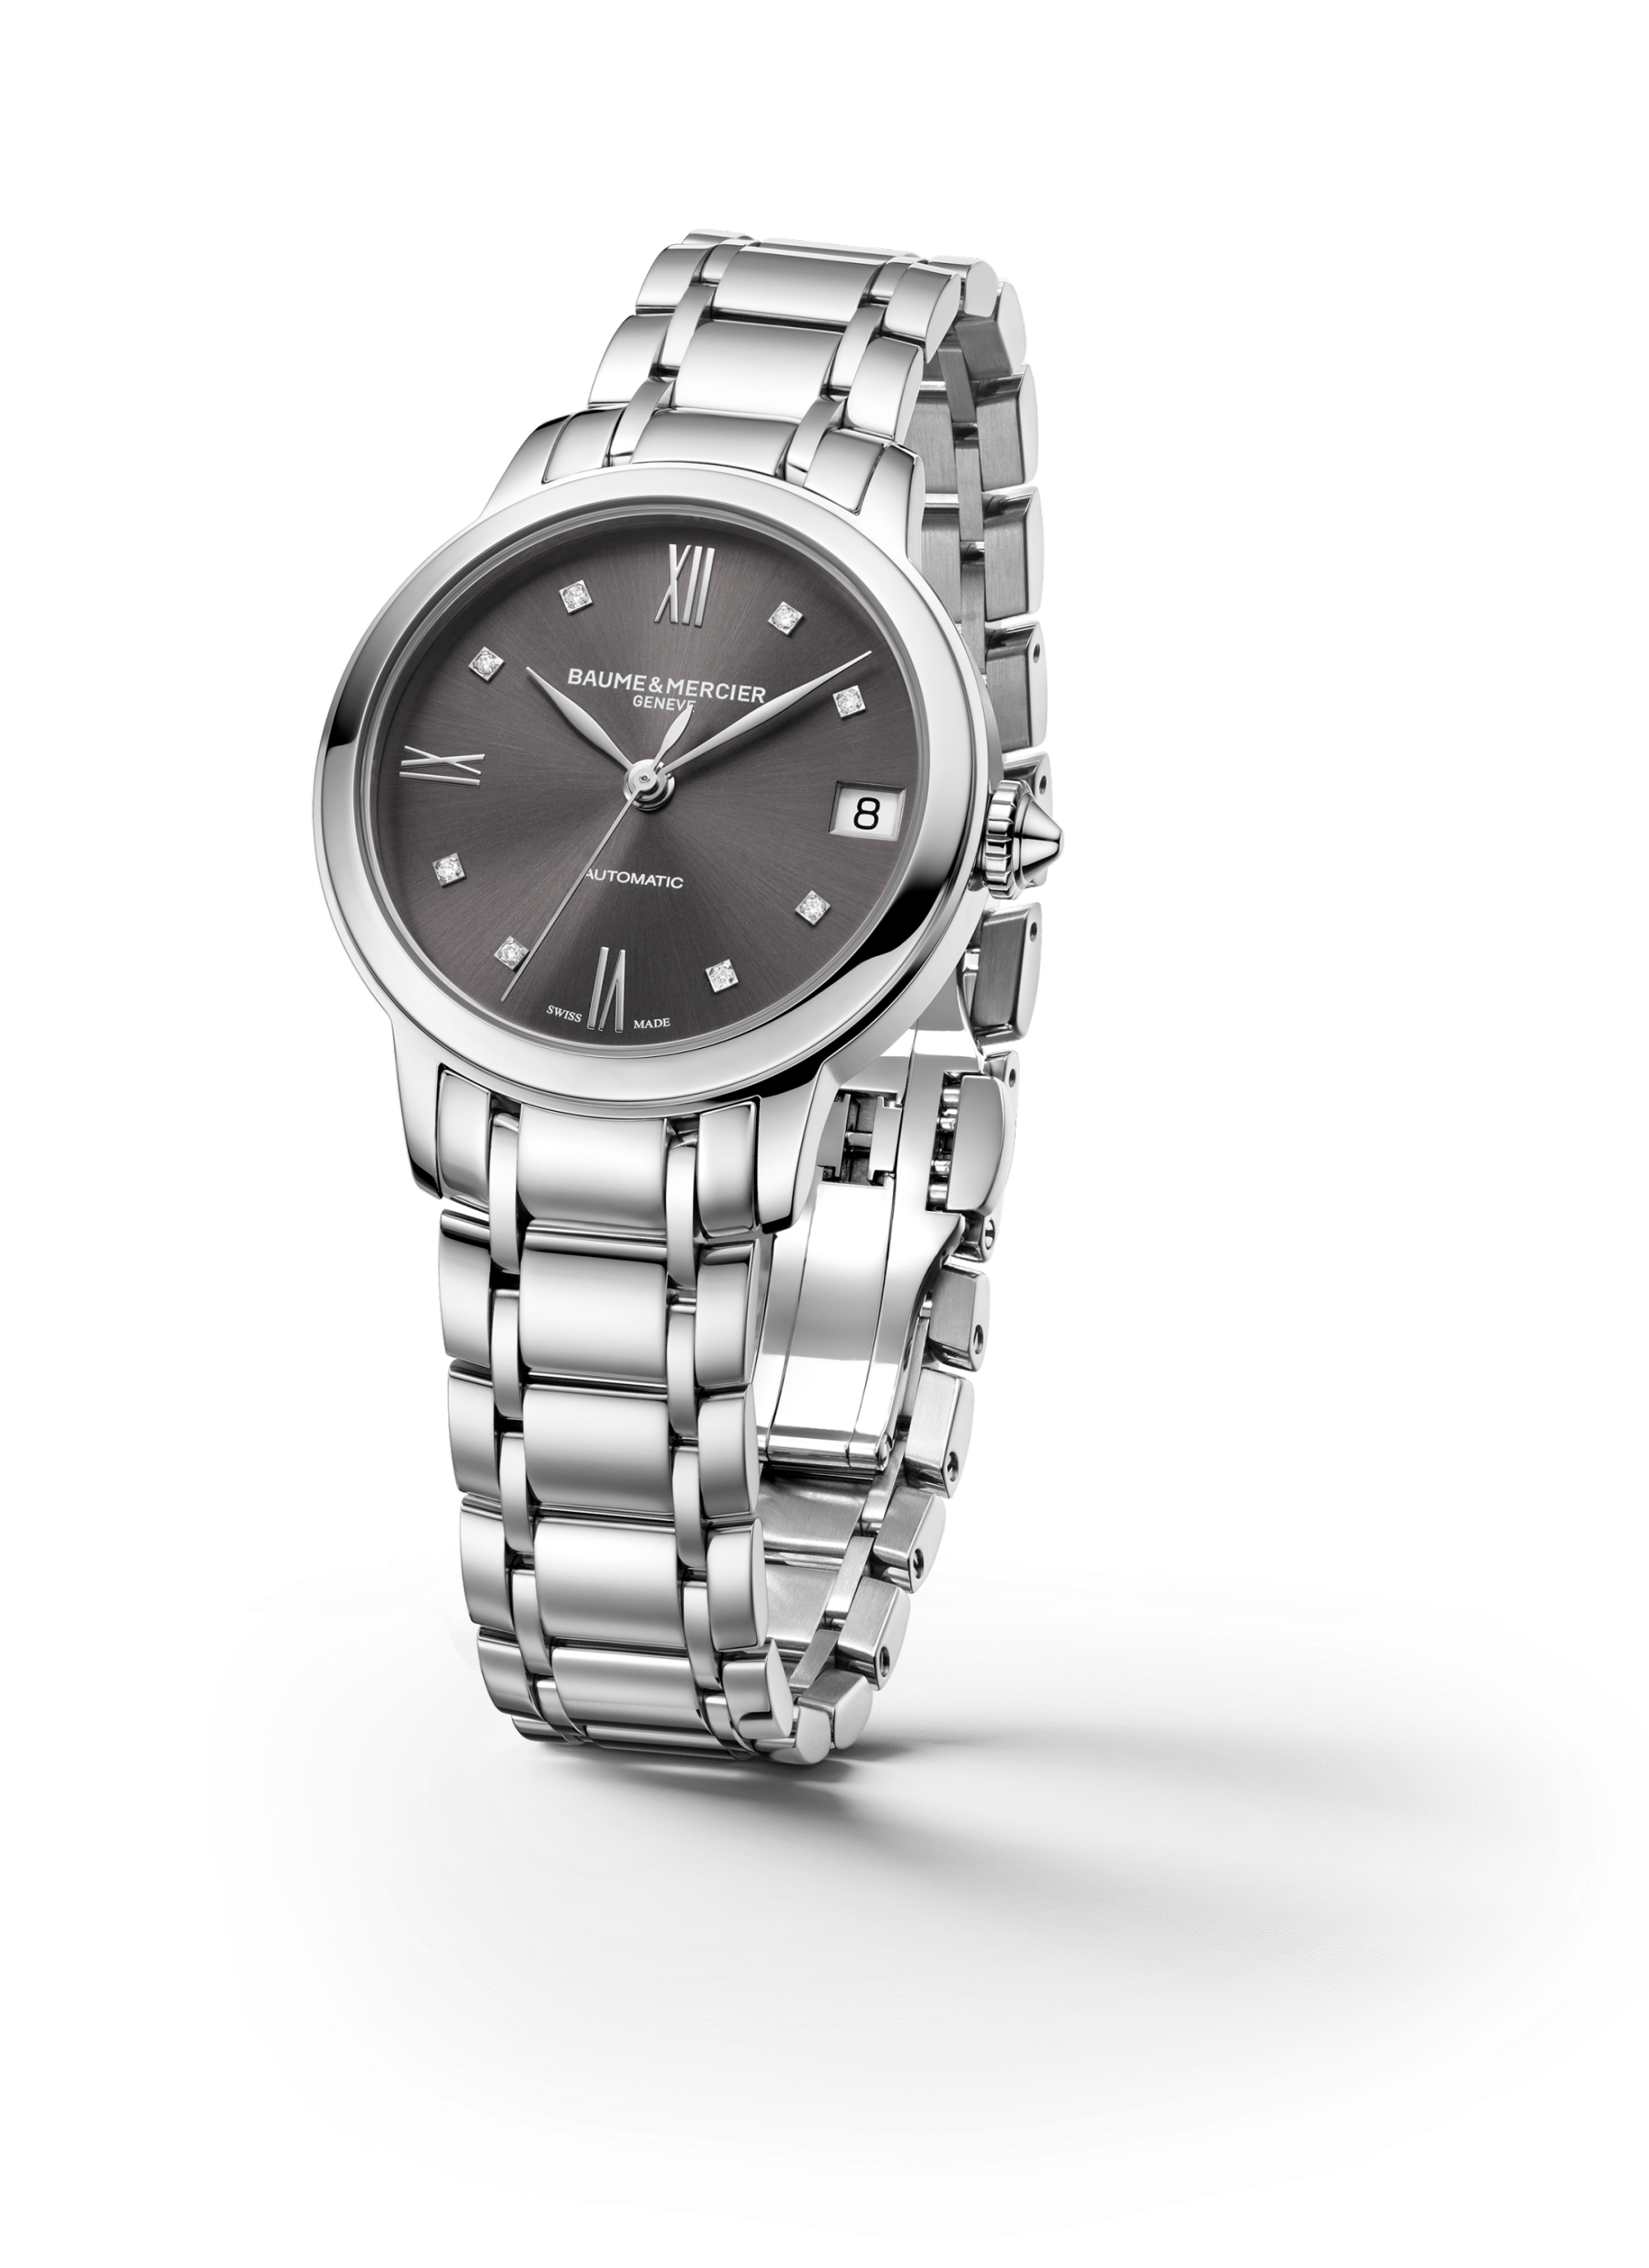 Classima 10610 Watch for ladies | Check Prices on Baume & Mercier alternative -